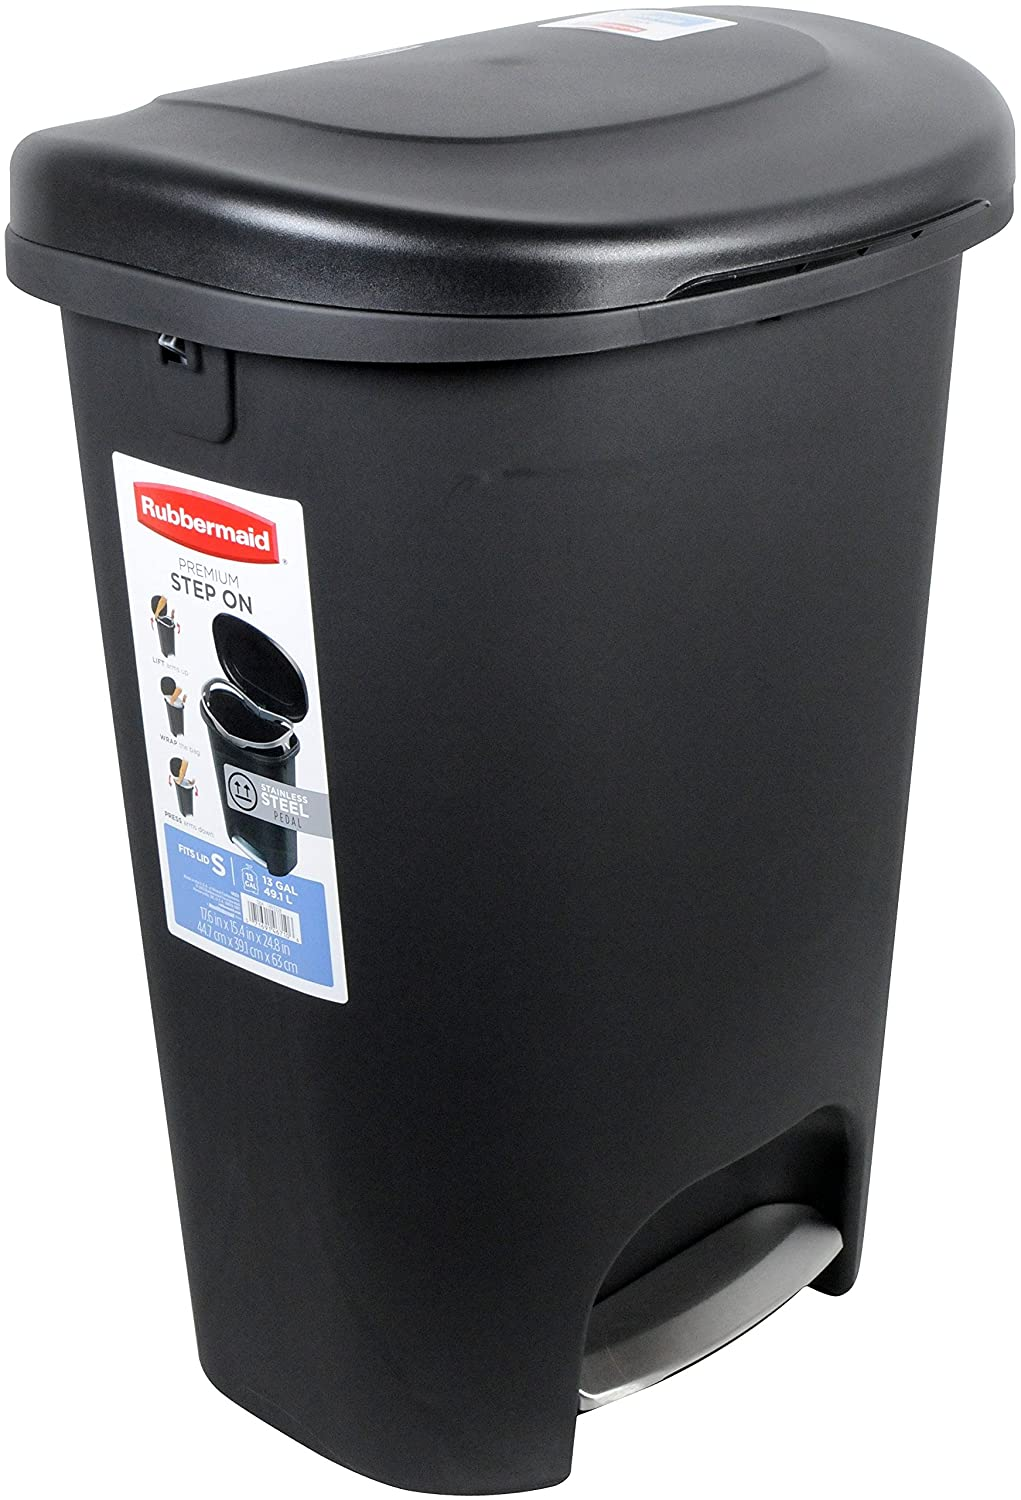 Rubbermaid Trash Can Black Friday Deal 2019